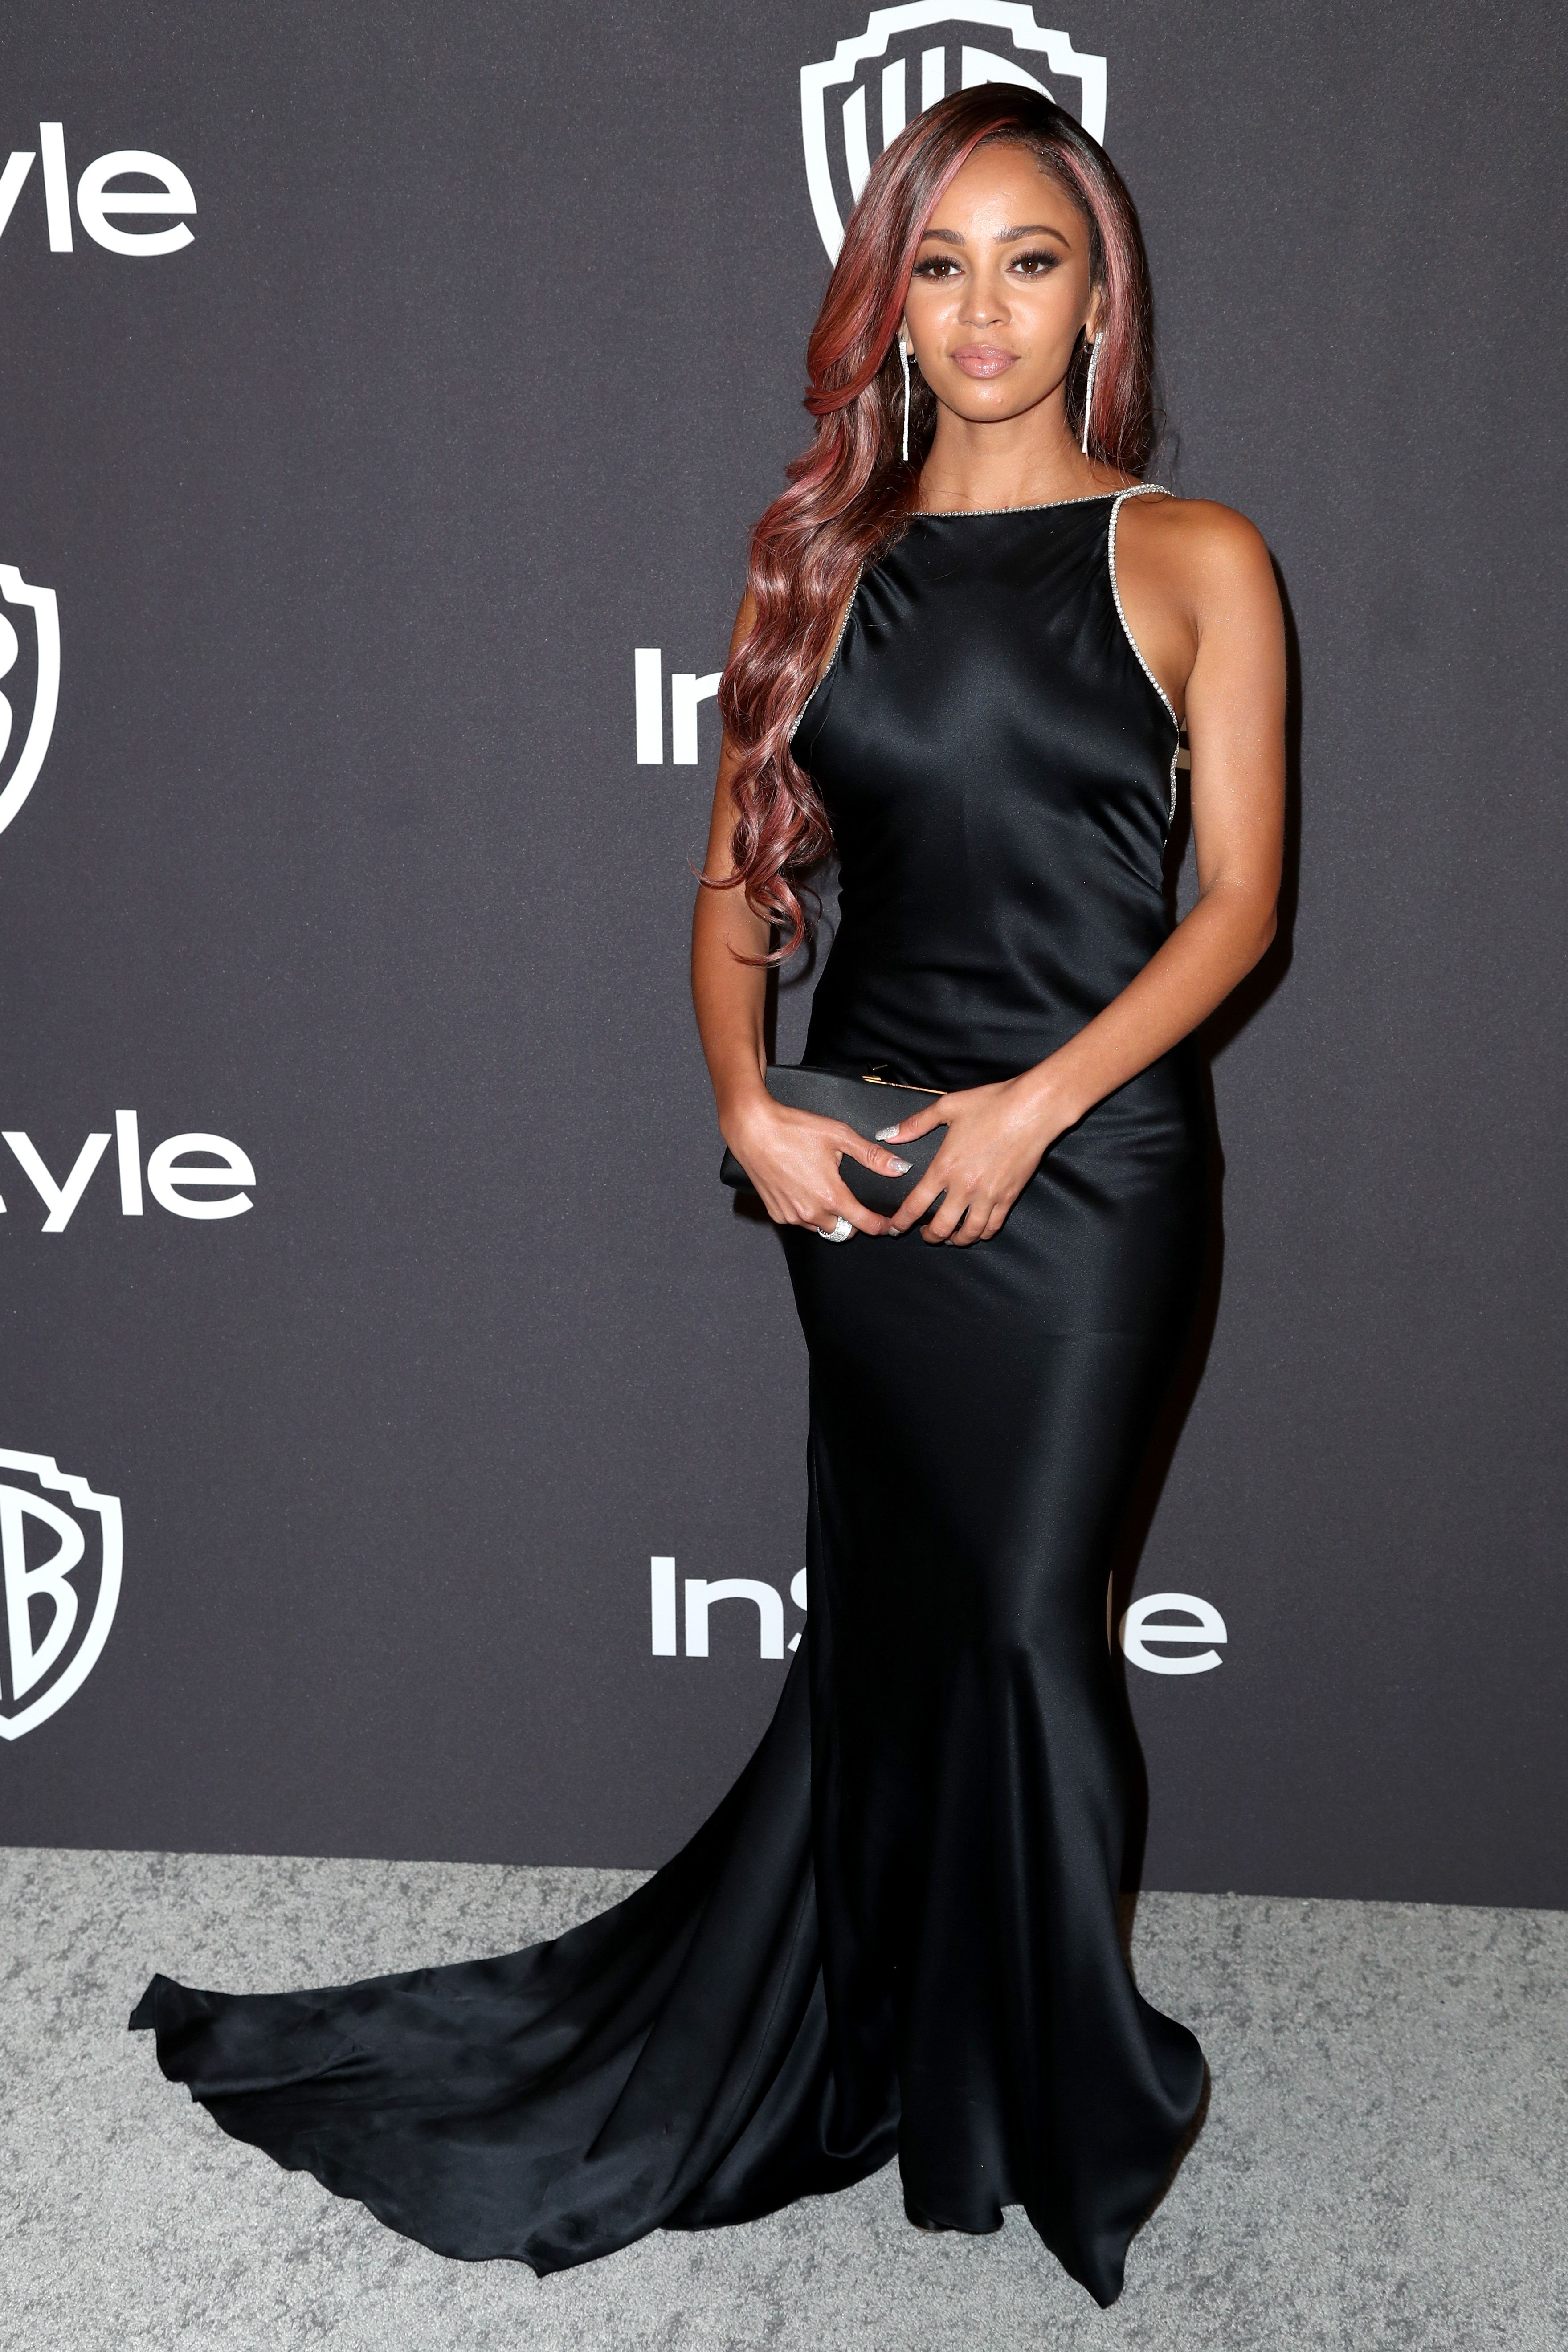 Vanessa Morgan attends the InStyle And Warner Bros. Golden Globes After Party 2019 at The Beverly Hilton Hotel on January 6, 2019 in Beverly Hills, California. | Source: Getty Images